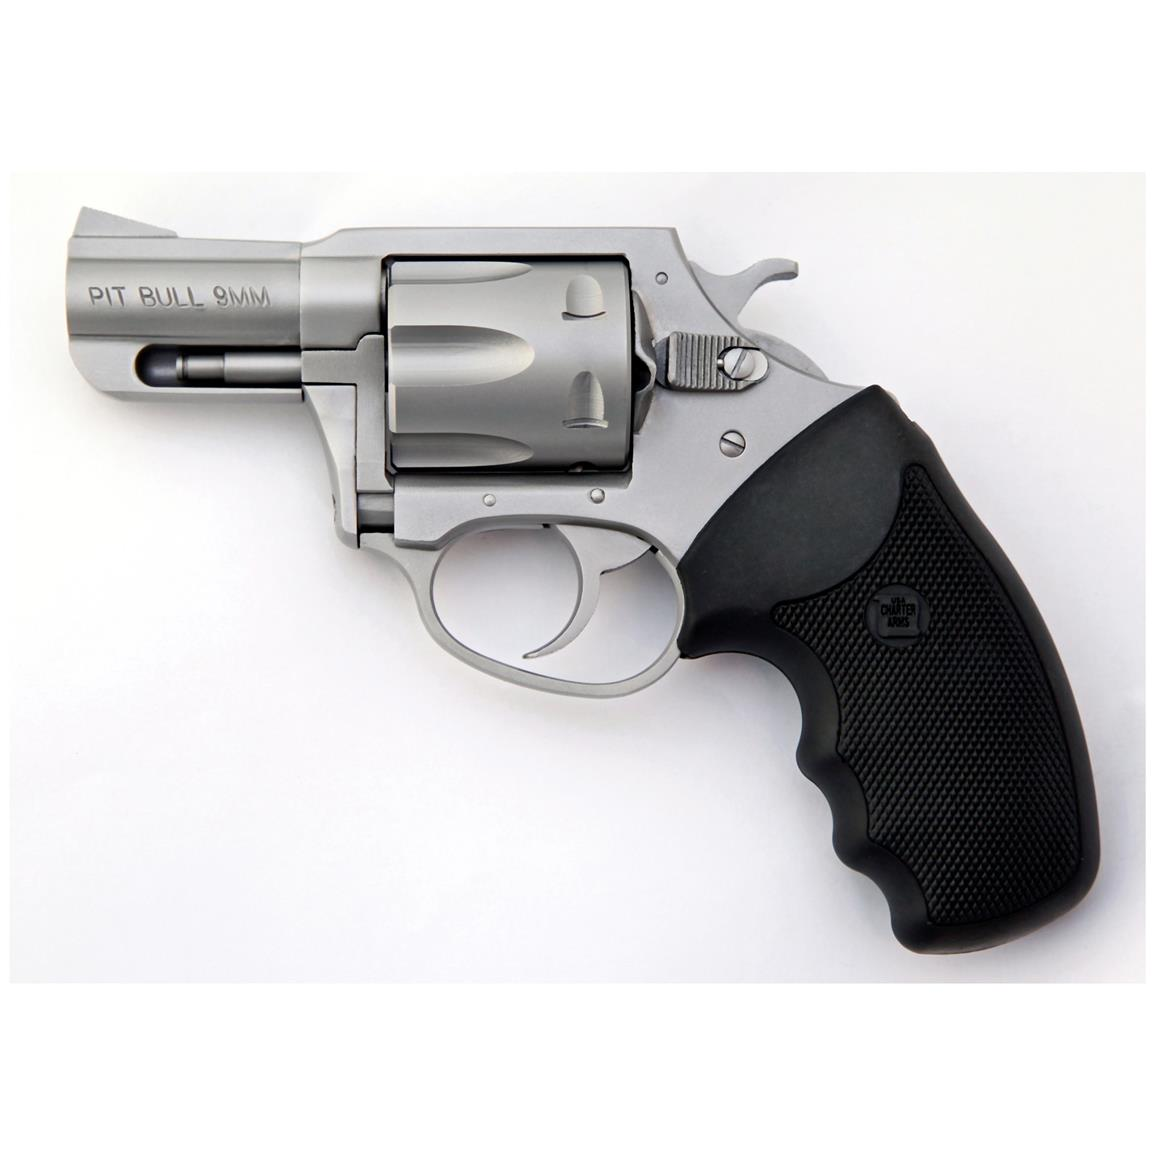 "Charter Arms Pitbull, Revolver, 9mm, 2.2"" Barrel, 5 Rounds"